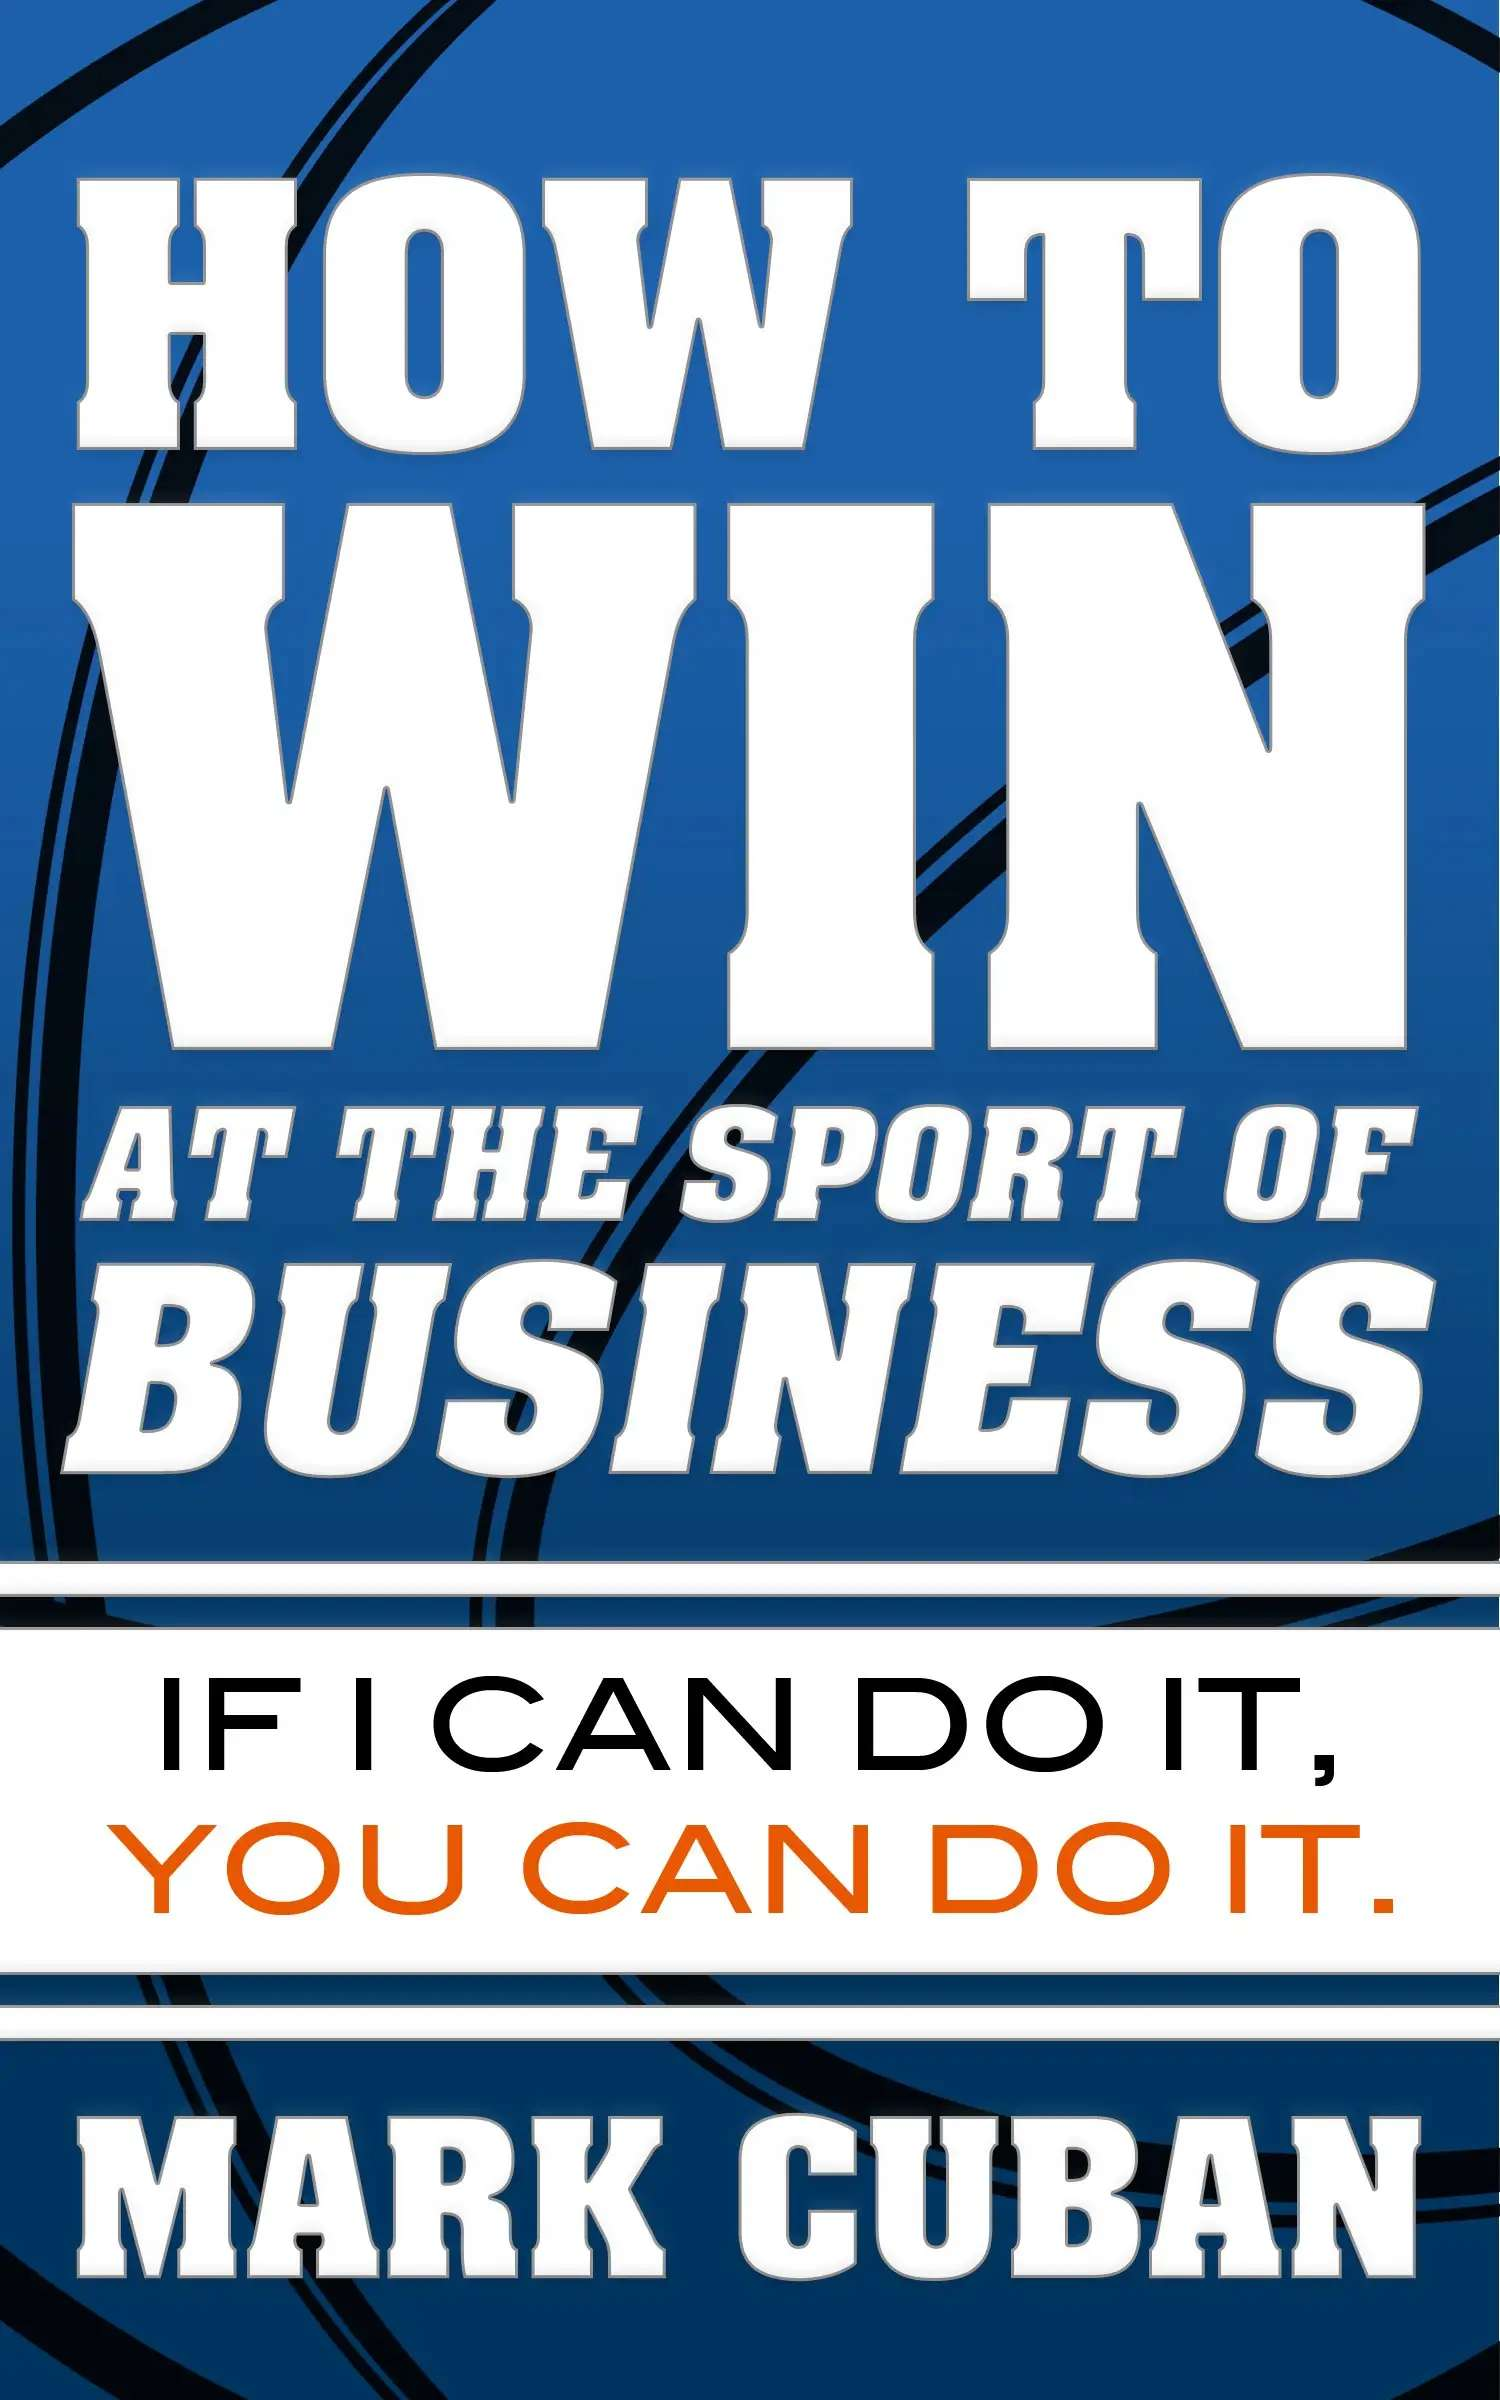 'How to Win at the Sport of Business' by Mark Cuban